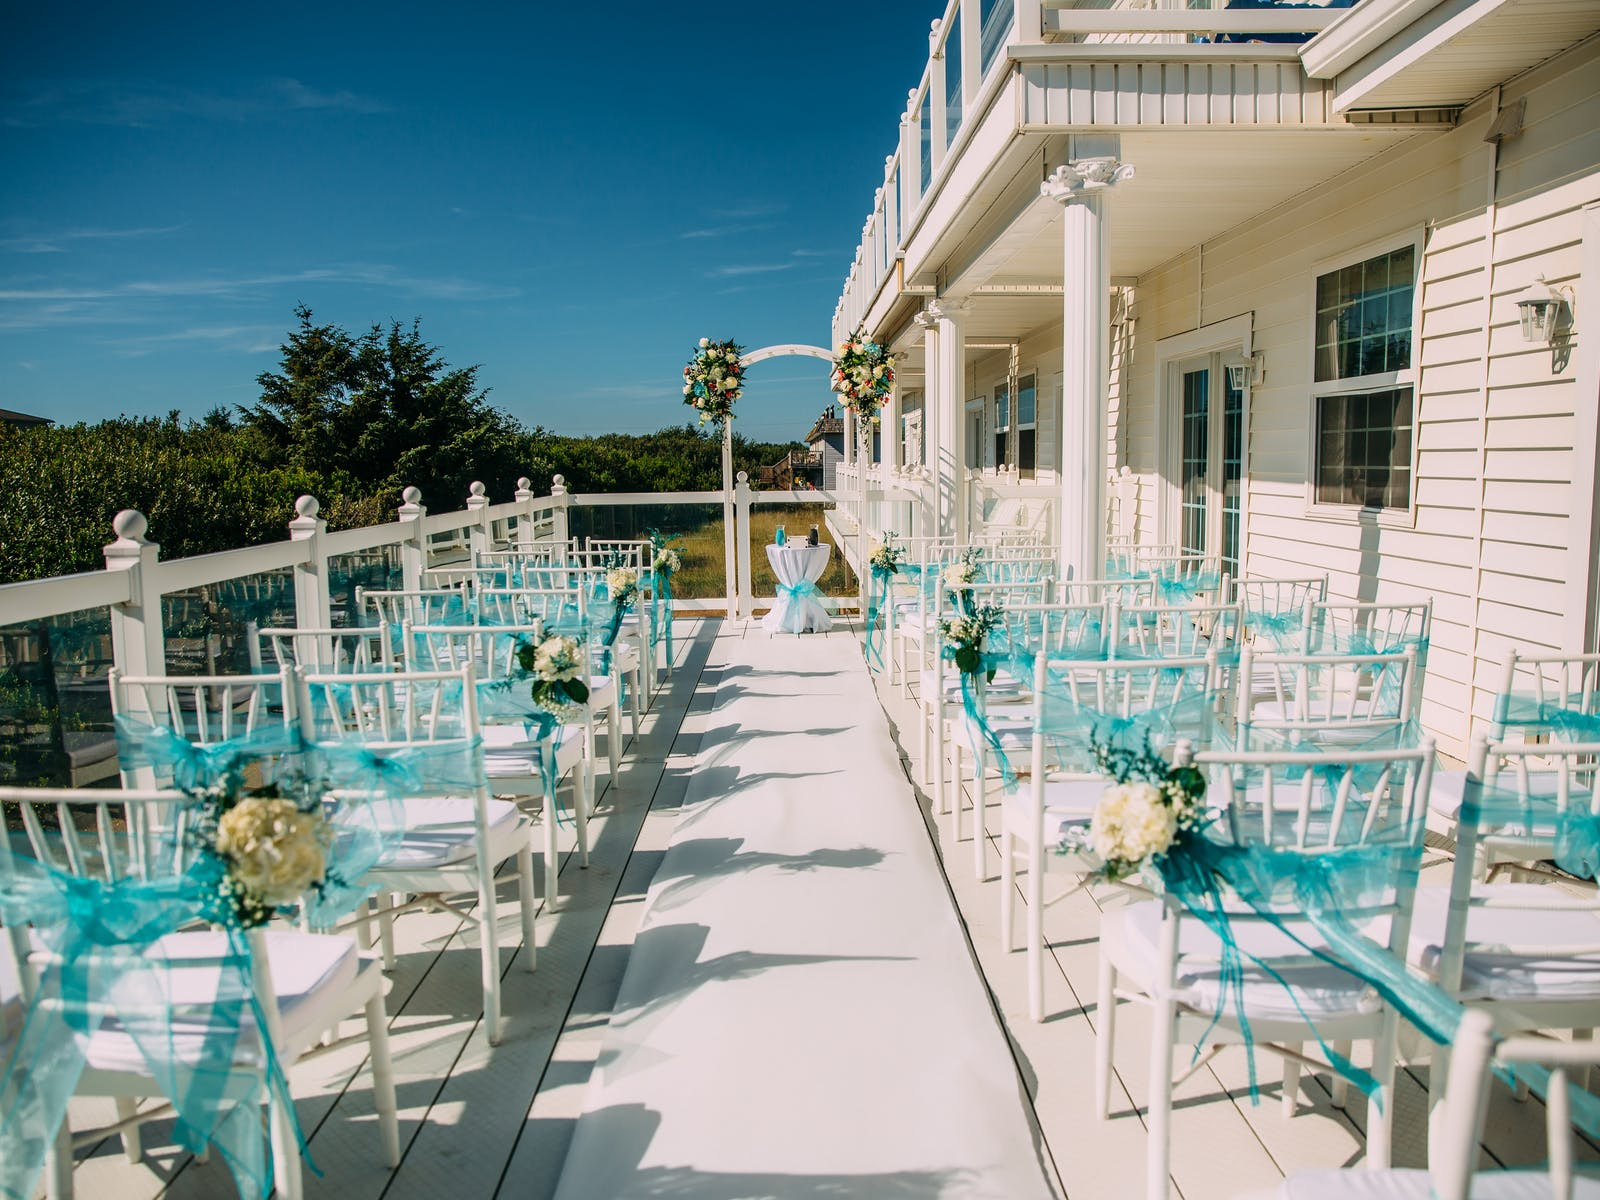 Seating for a wedding ceremony set up at Judith Ann Inn in Ocean Shores, WA